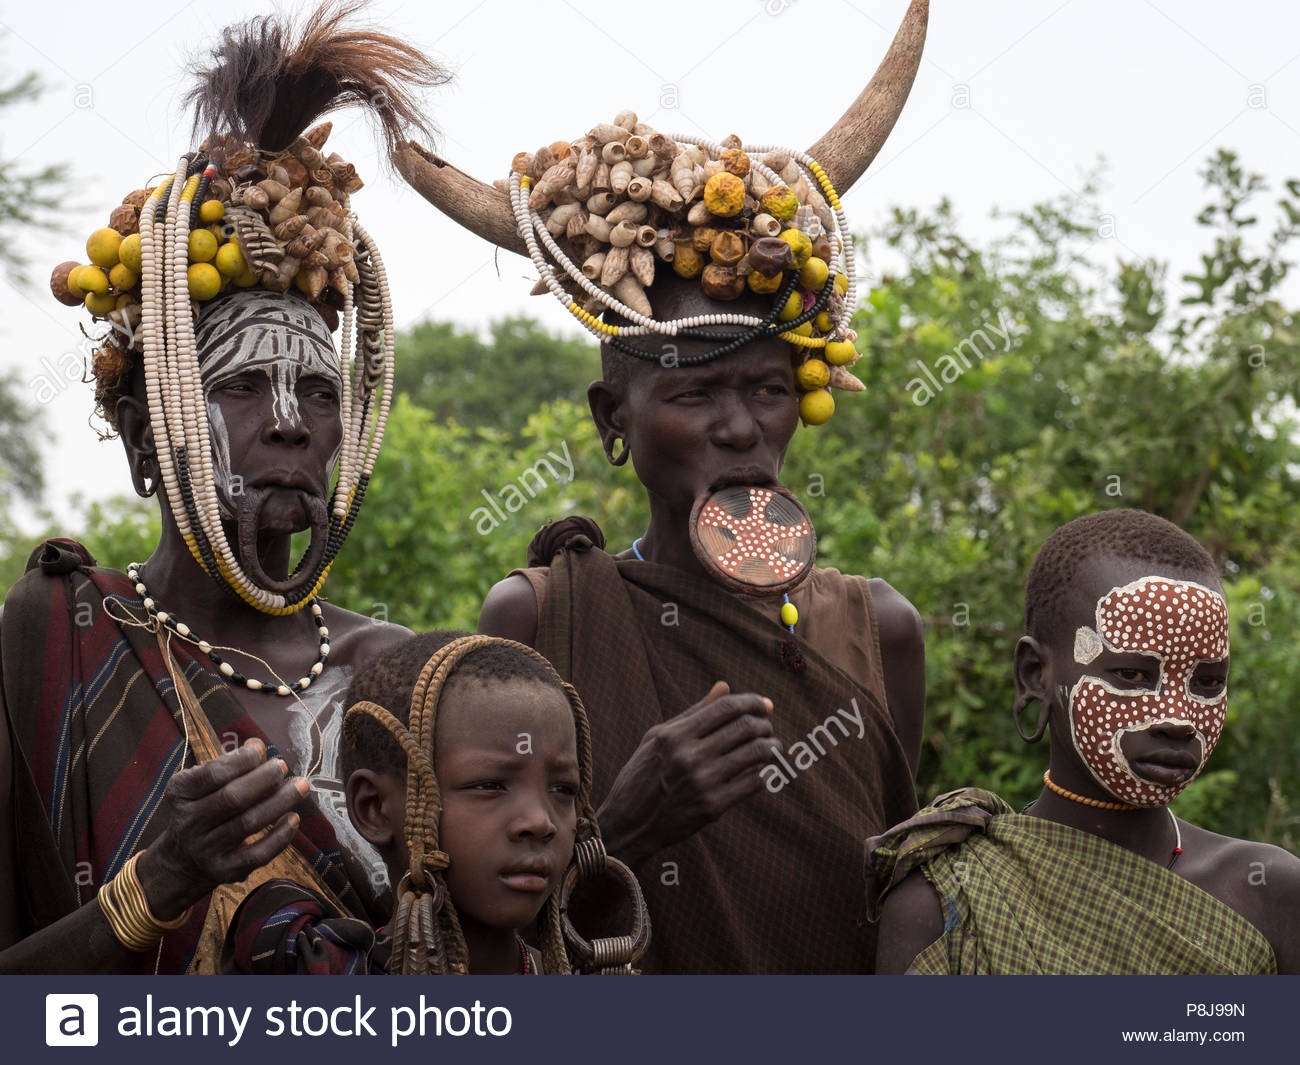 Women and children of the Mursi tribe with headdress and lip plate, Ethiopia - Stock Image